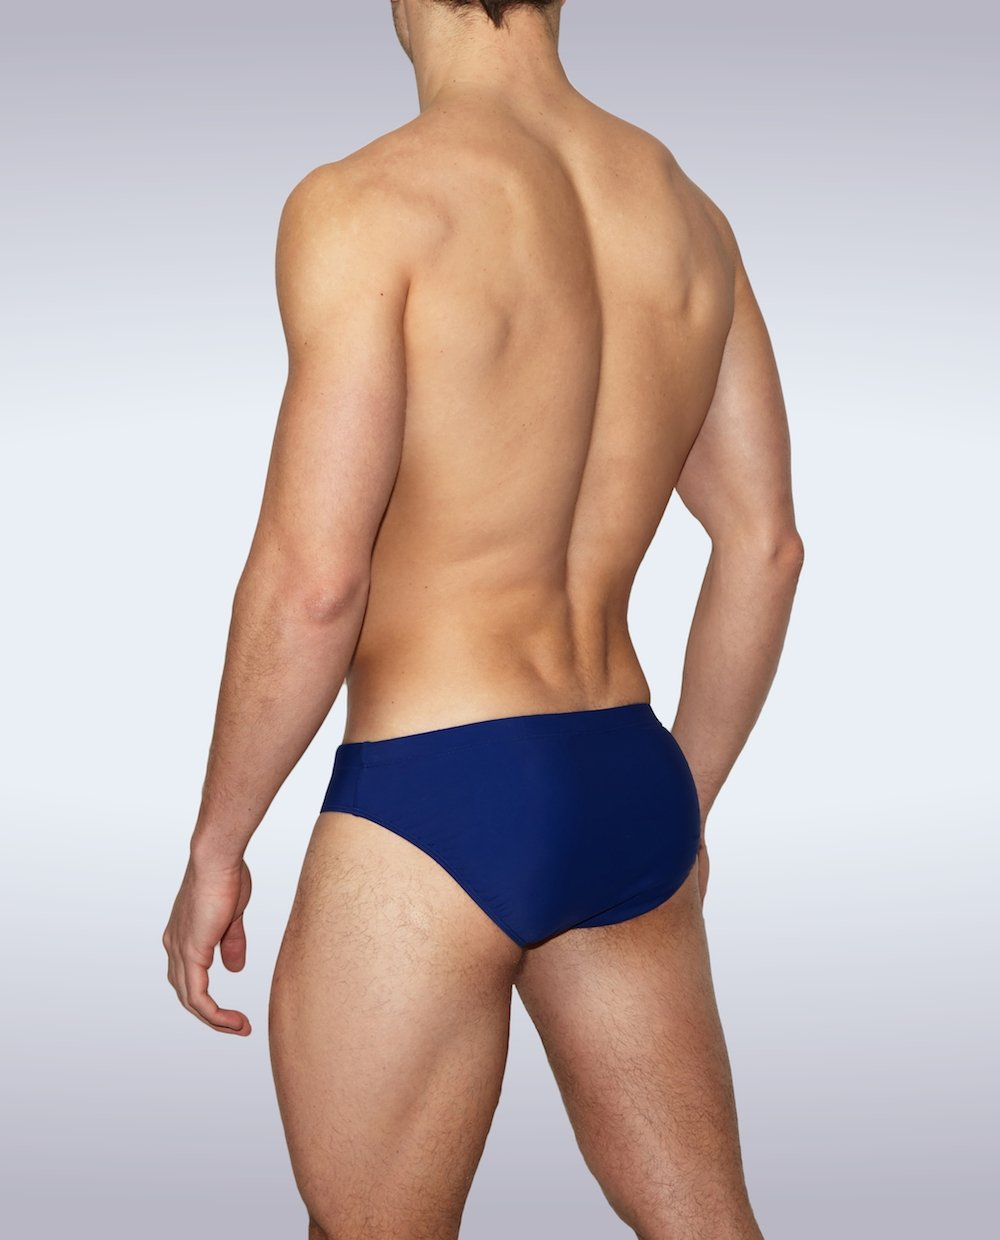 Cristobal Swim Brief - Garçon Underwear sexy men's underwear Swim Brief Garçon Underwear